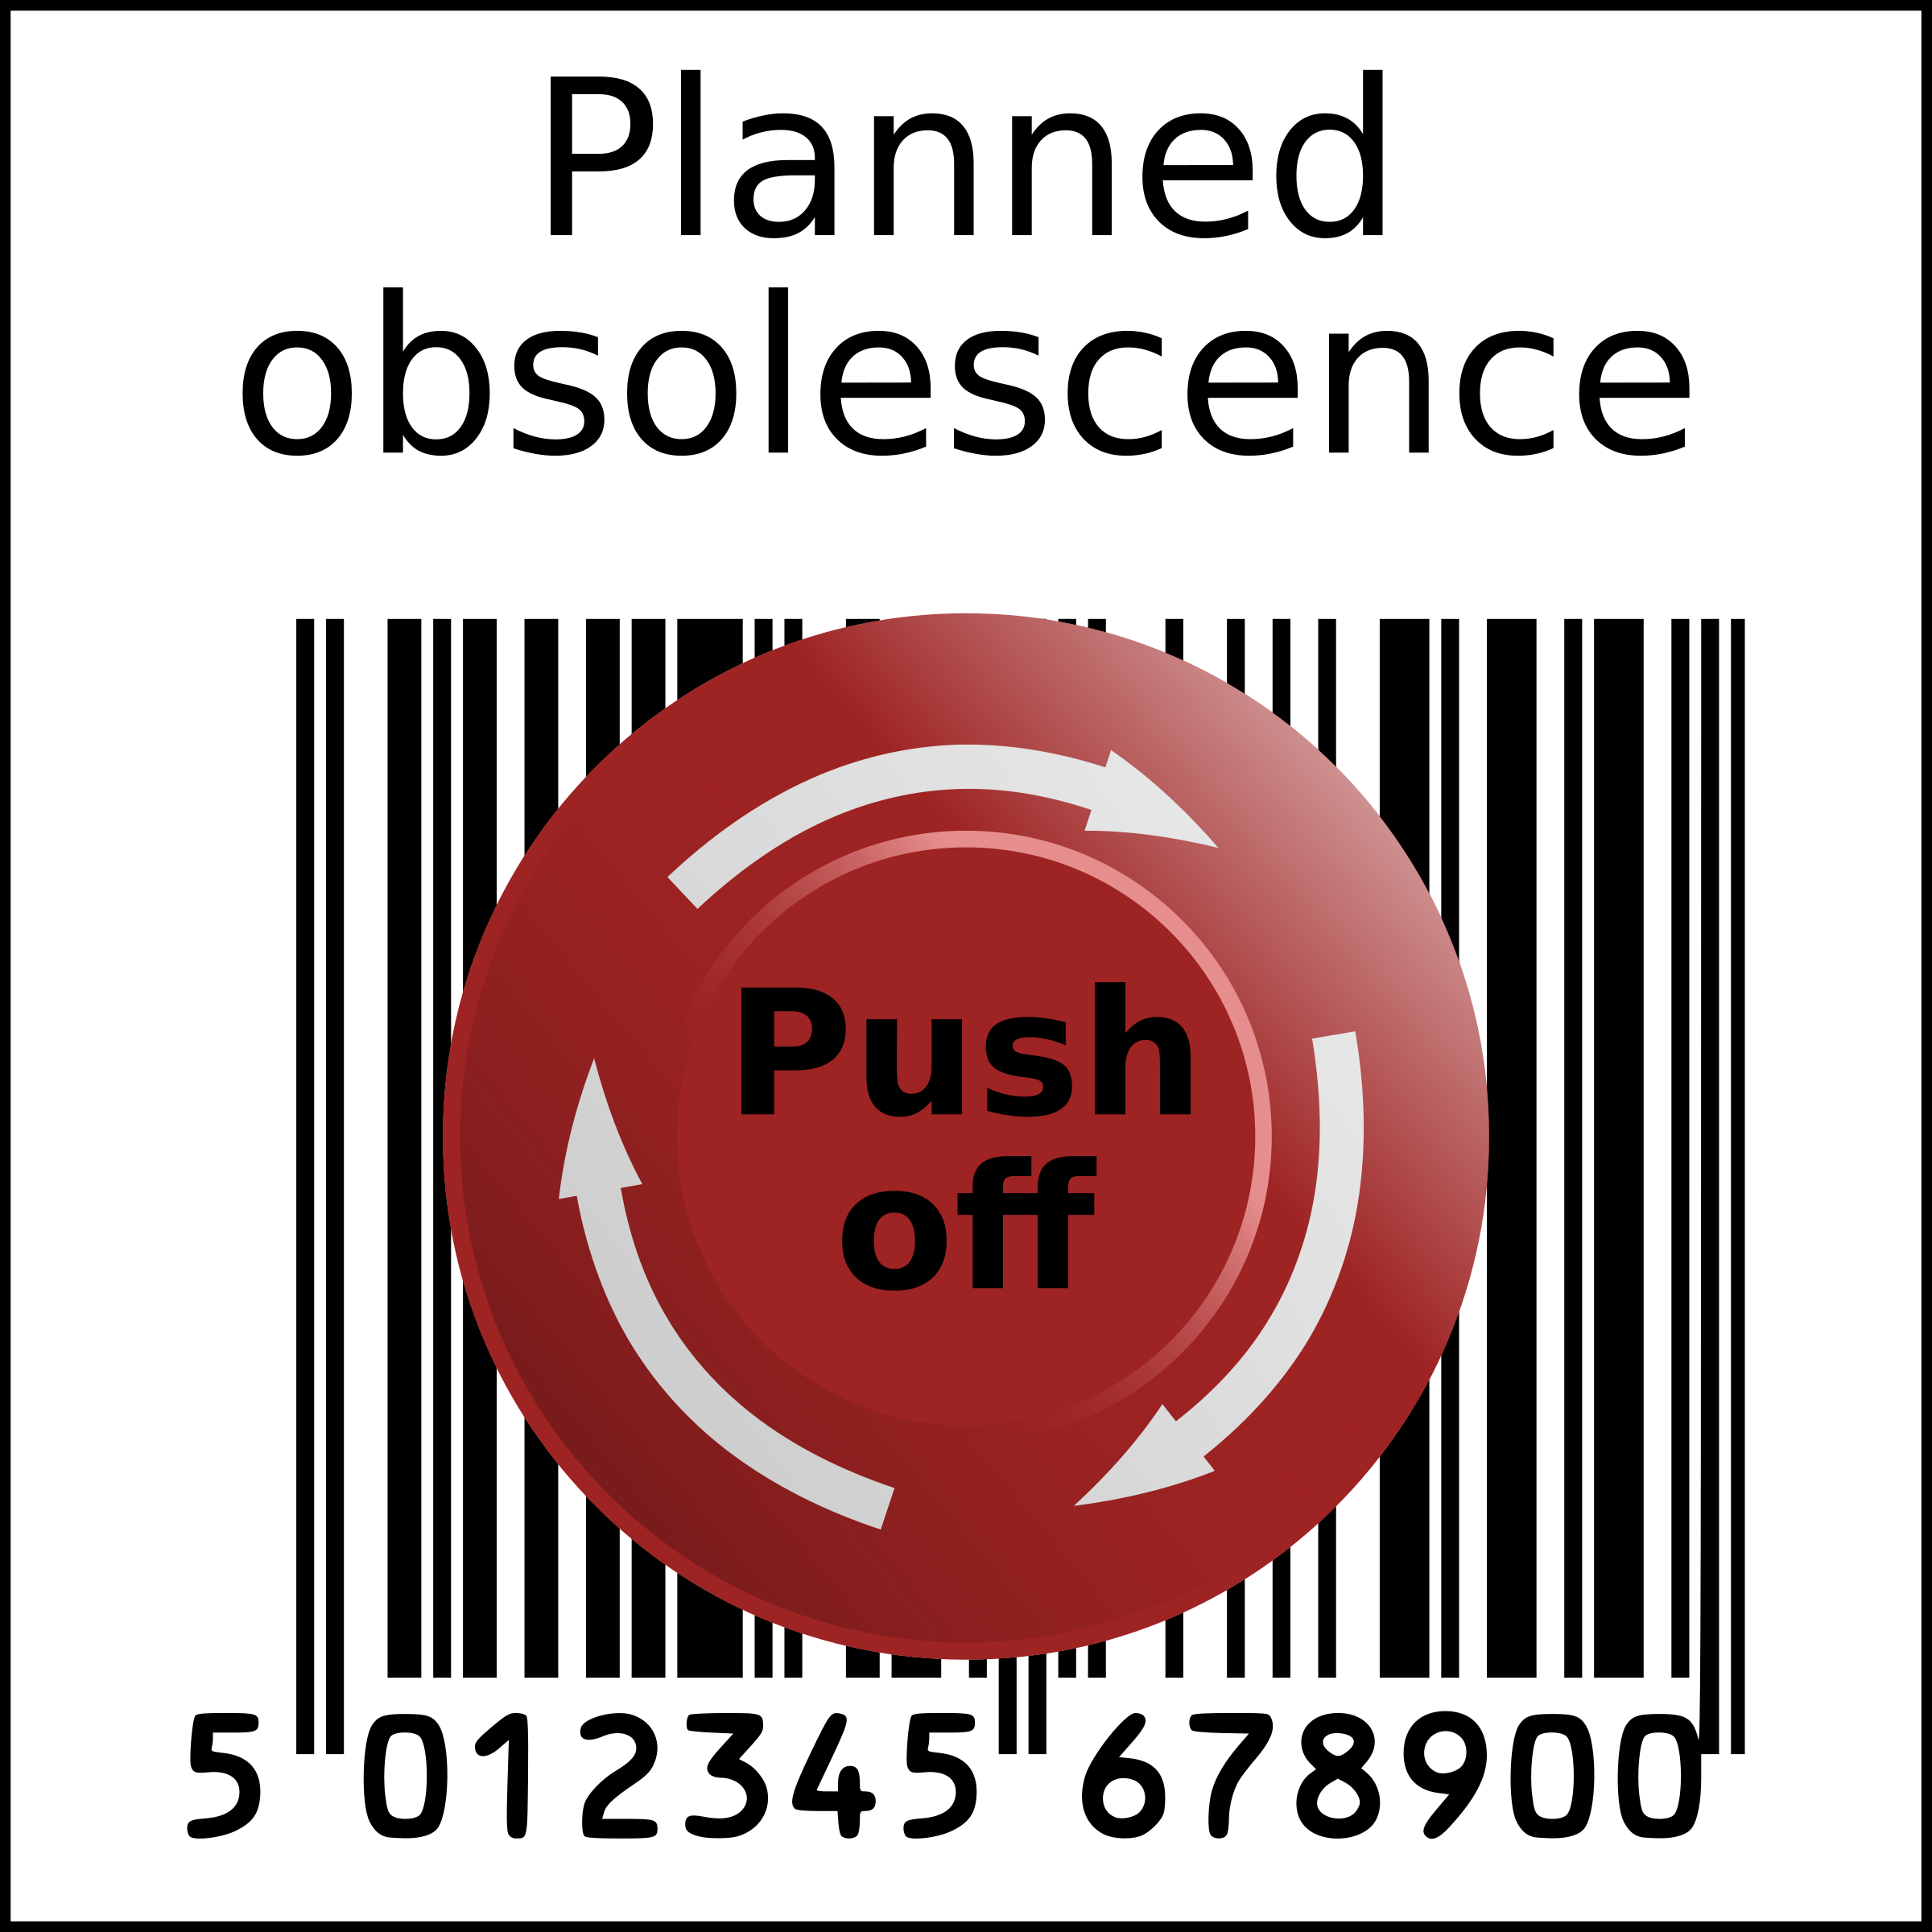 Emergency clipart emergency button. Planned obsolescence barcode in